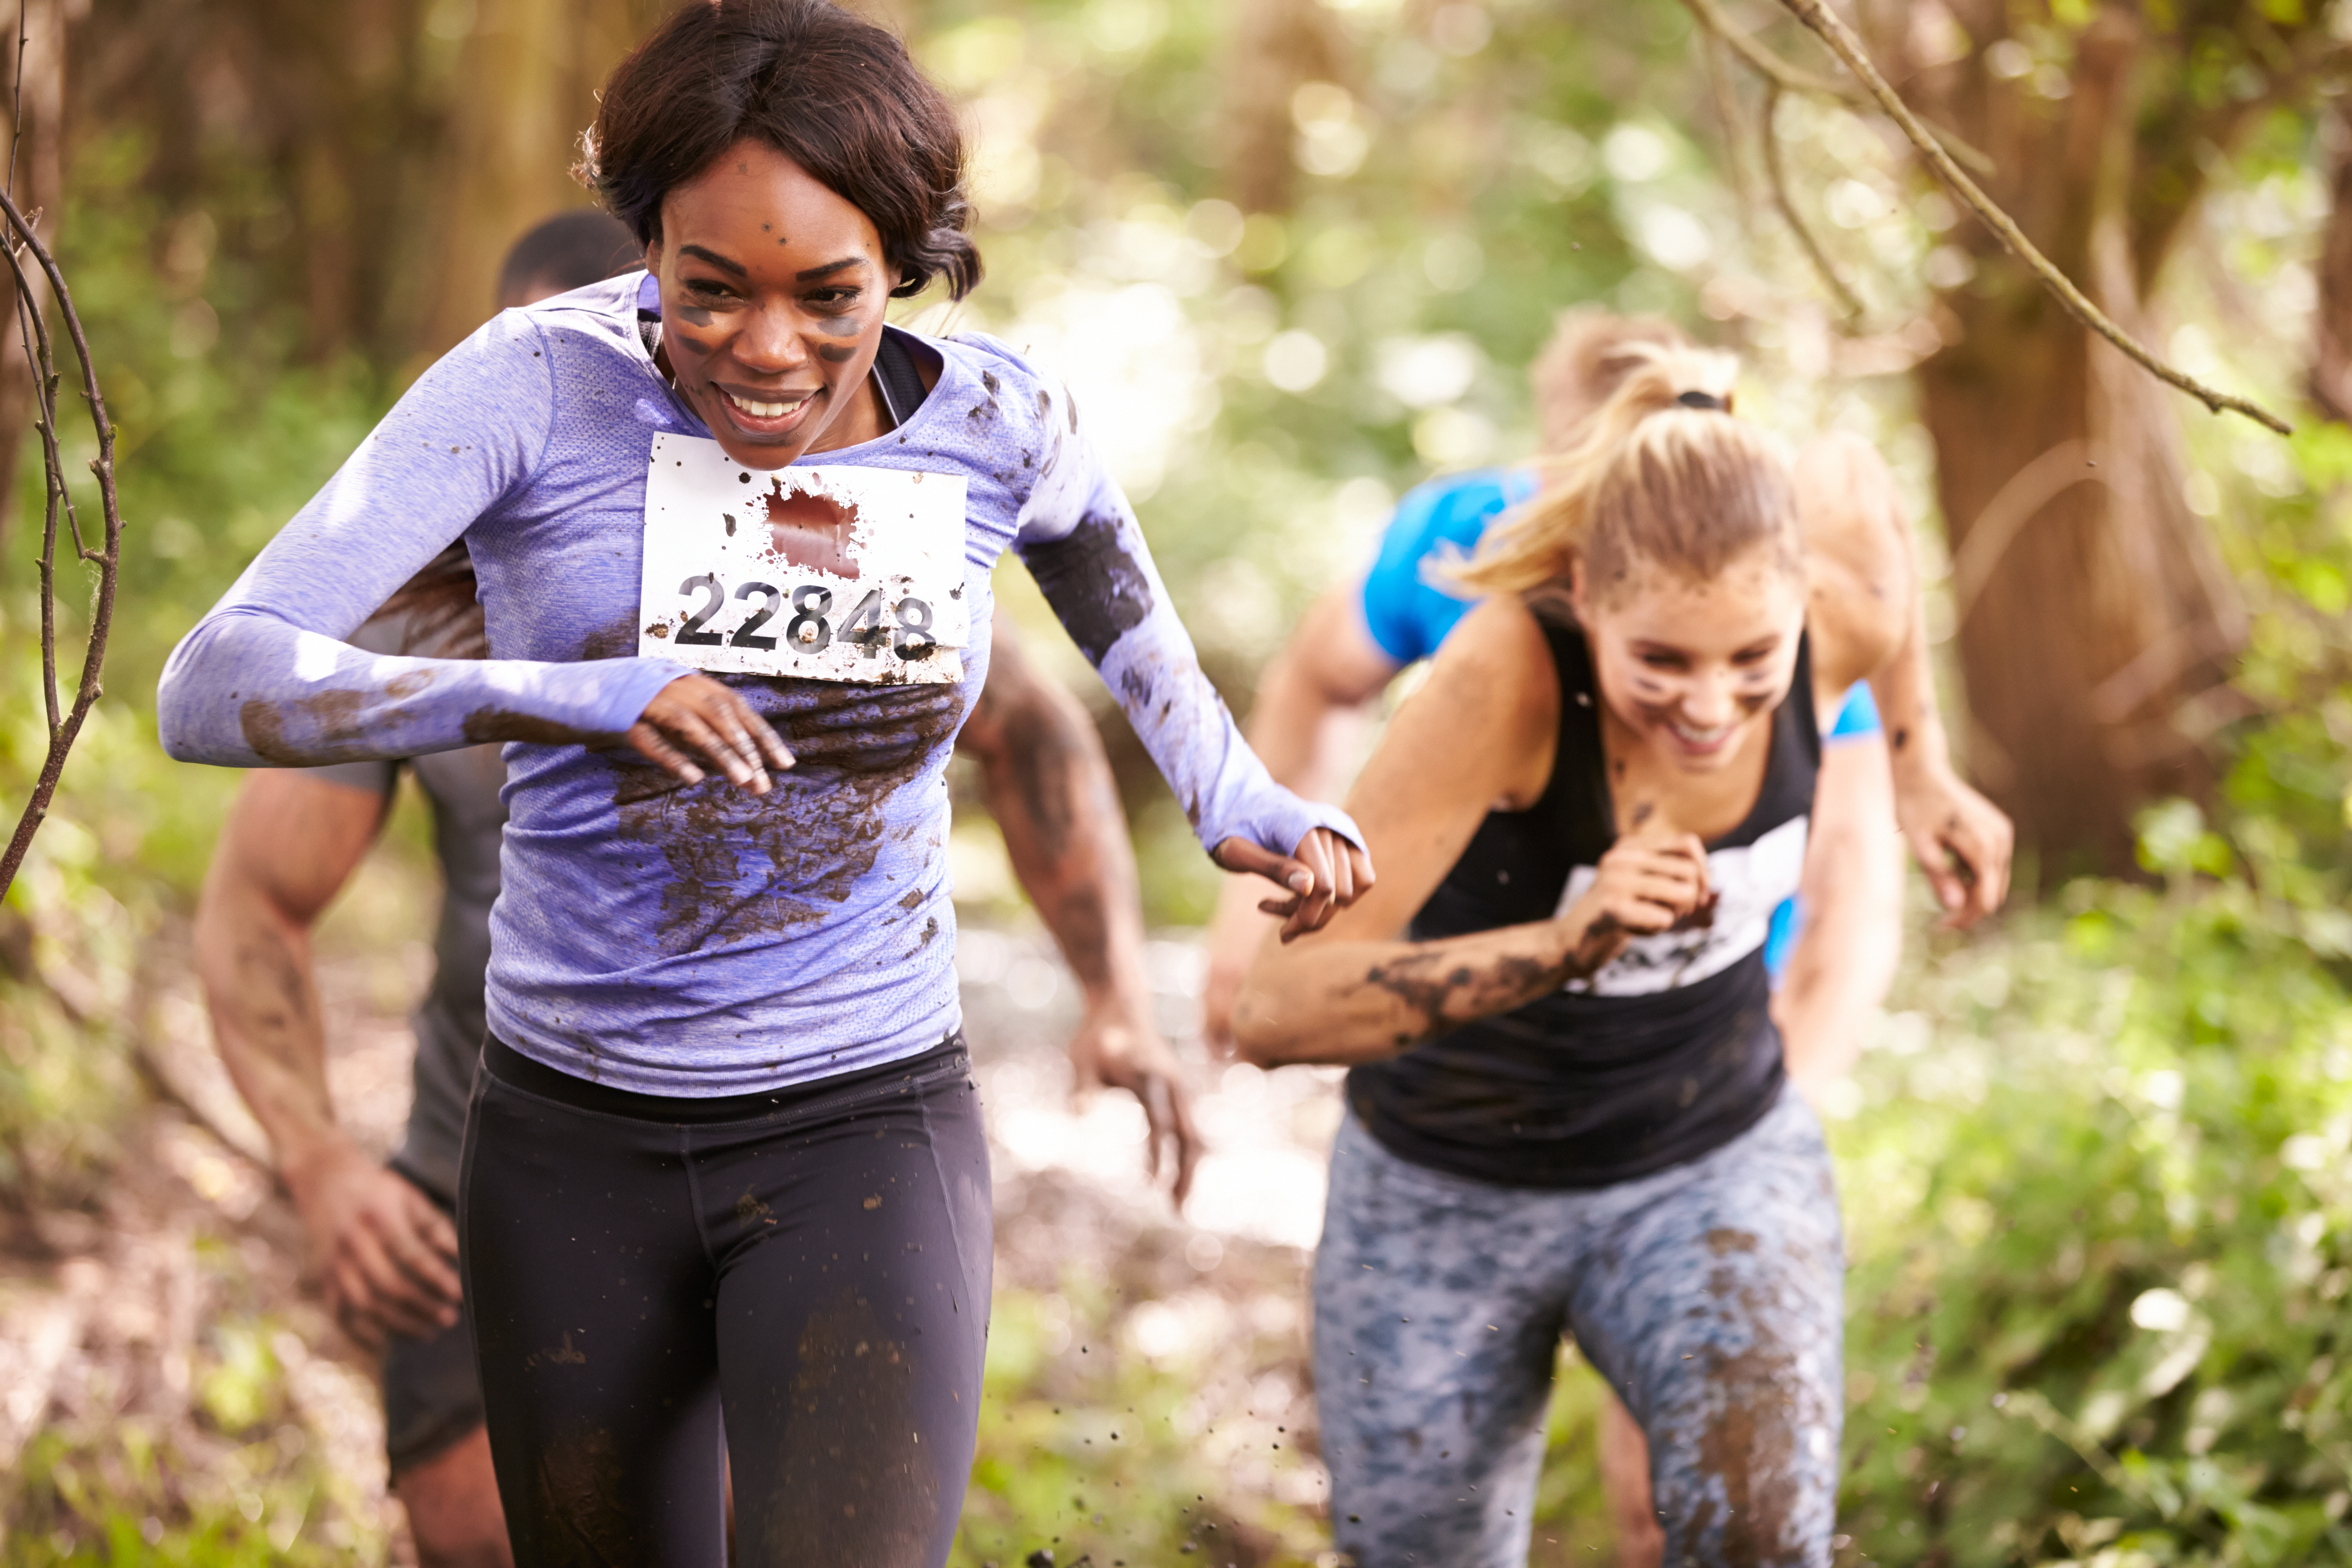 6 Fitness Events You Need To Attend This Bank Holiday